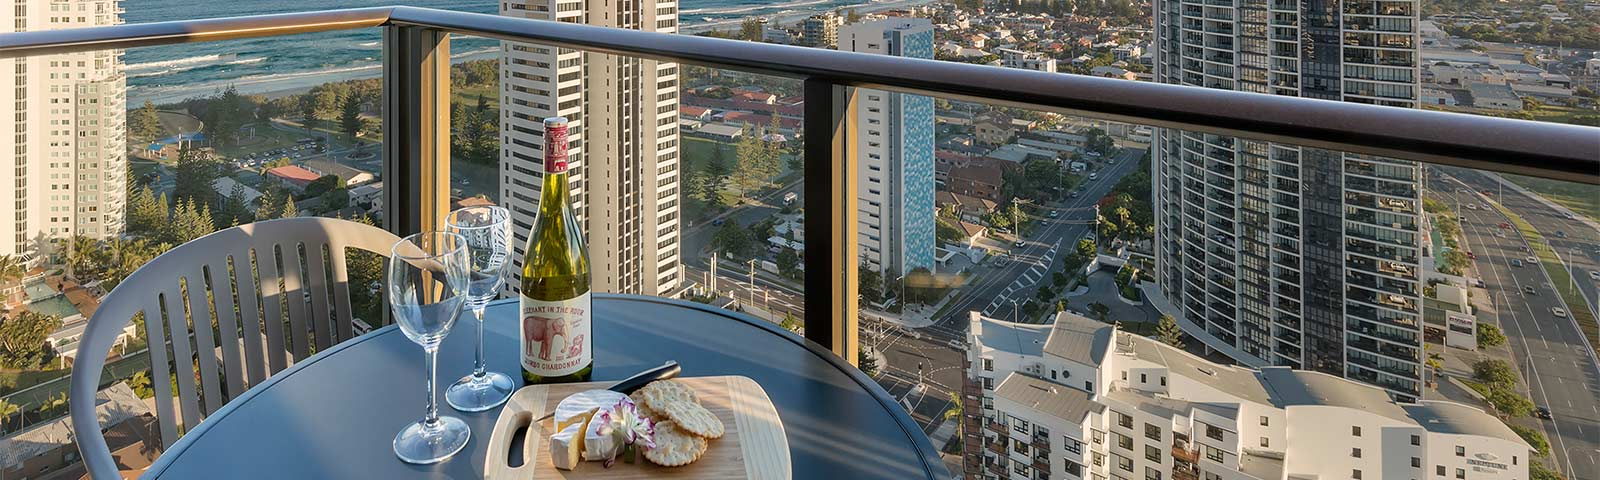 Red wine, two glasses and cheese plate set on the spacious balcony at  two bedroom ocean premier suite of AVANI Broadbeach Gold Coast Residence with breathtaking ocean views and high rise